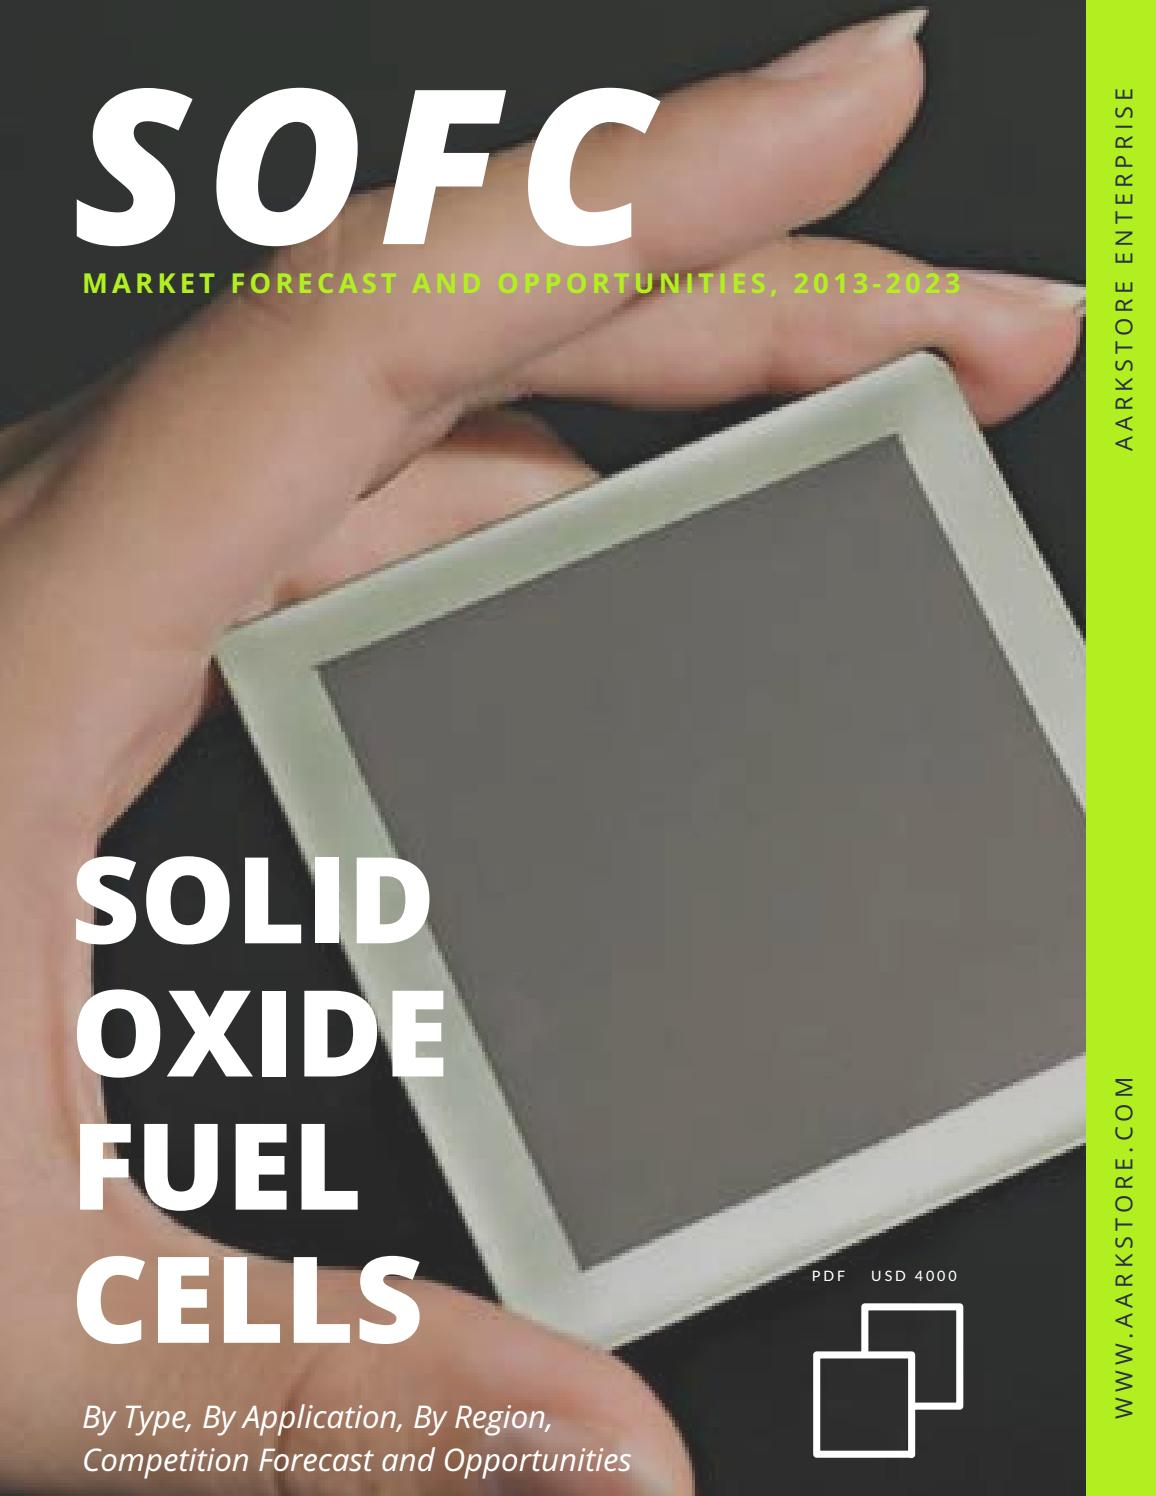 Global Solid Oxide Fuel Cells (SOFC) Market Forecast and